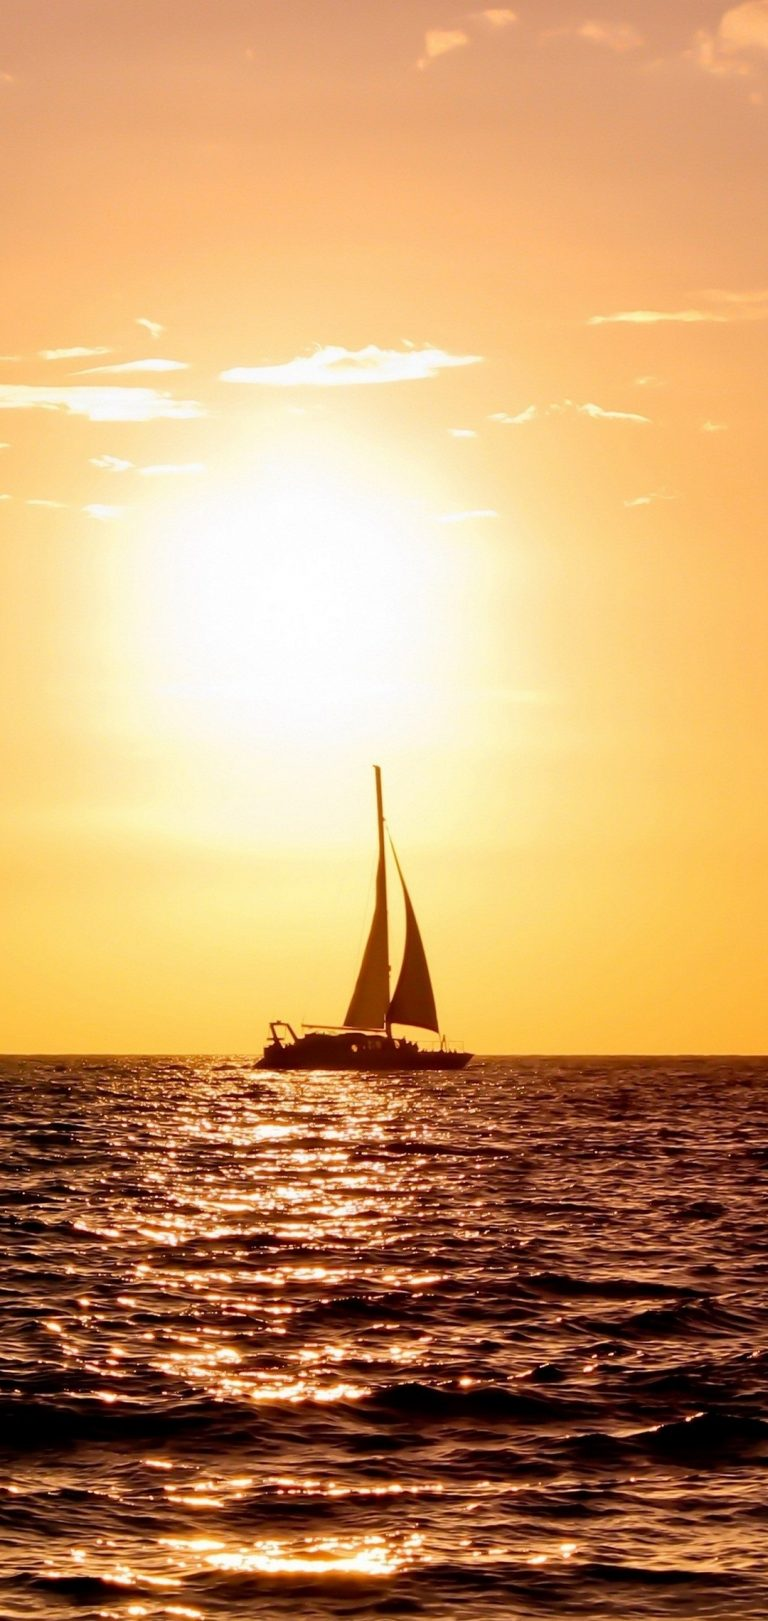 Sailboat Wallpaper 1080x2280 768x1621